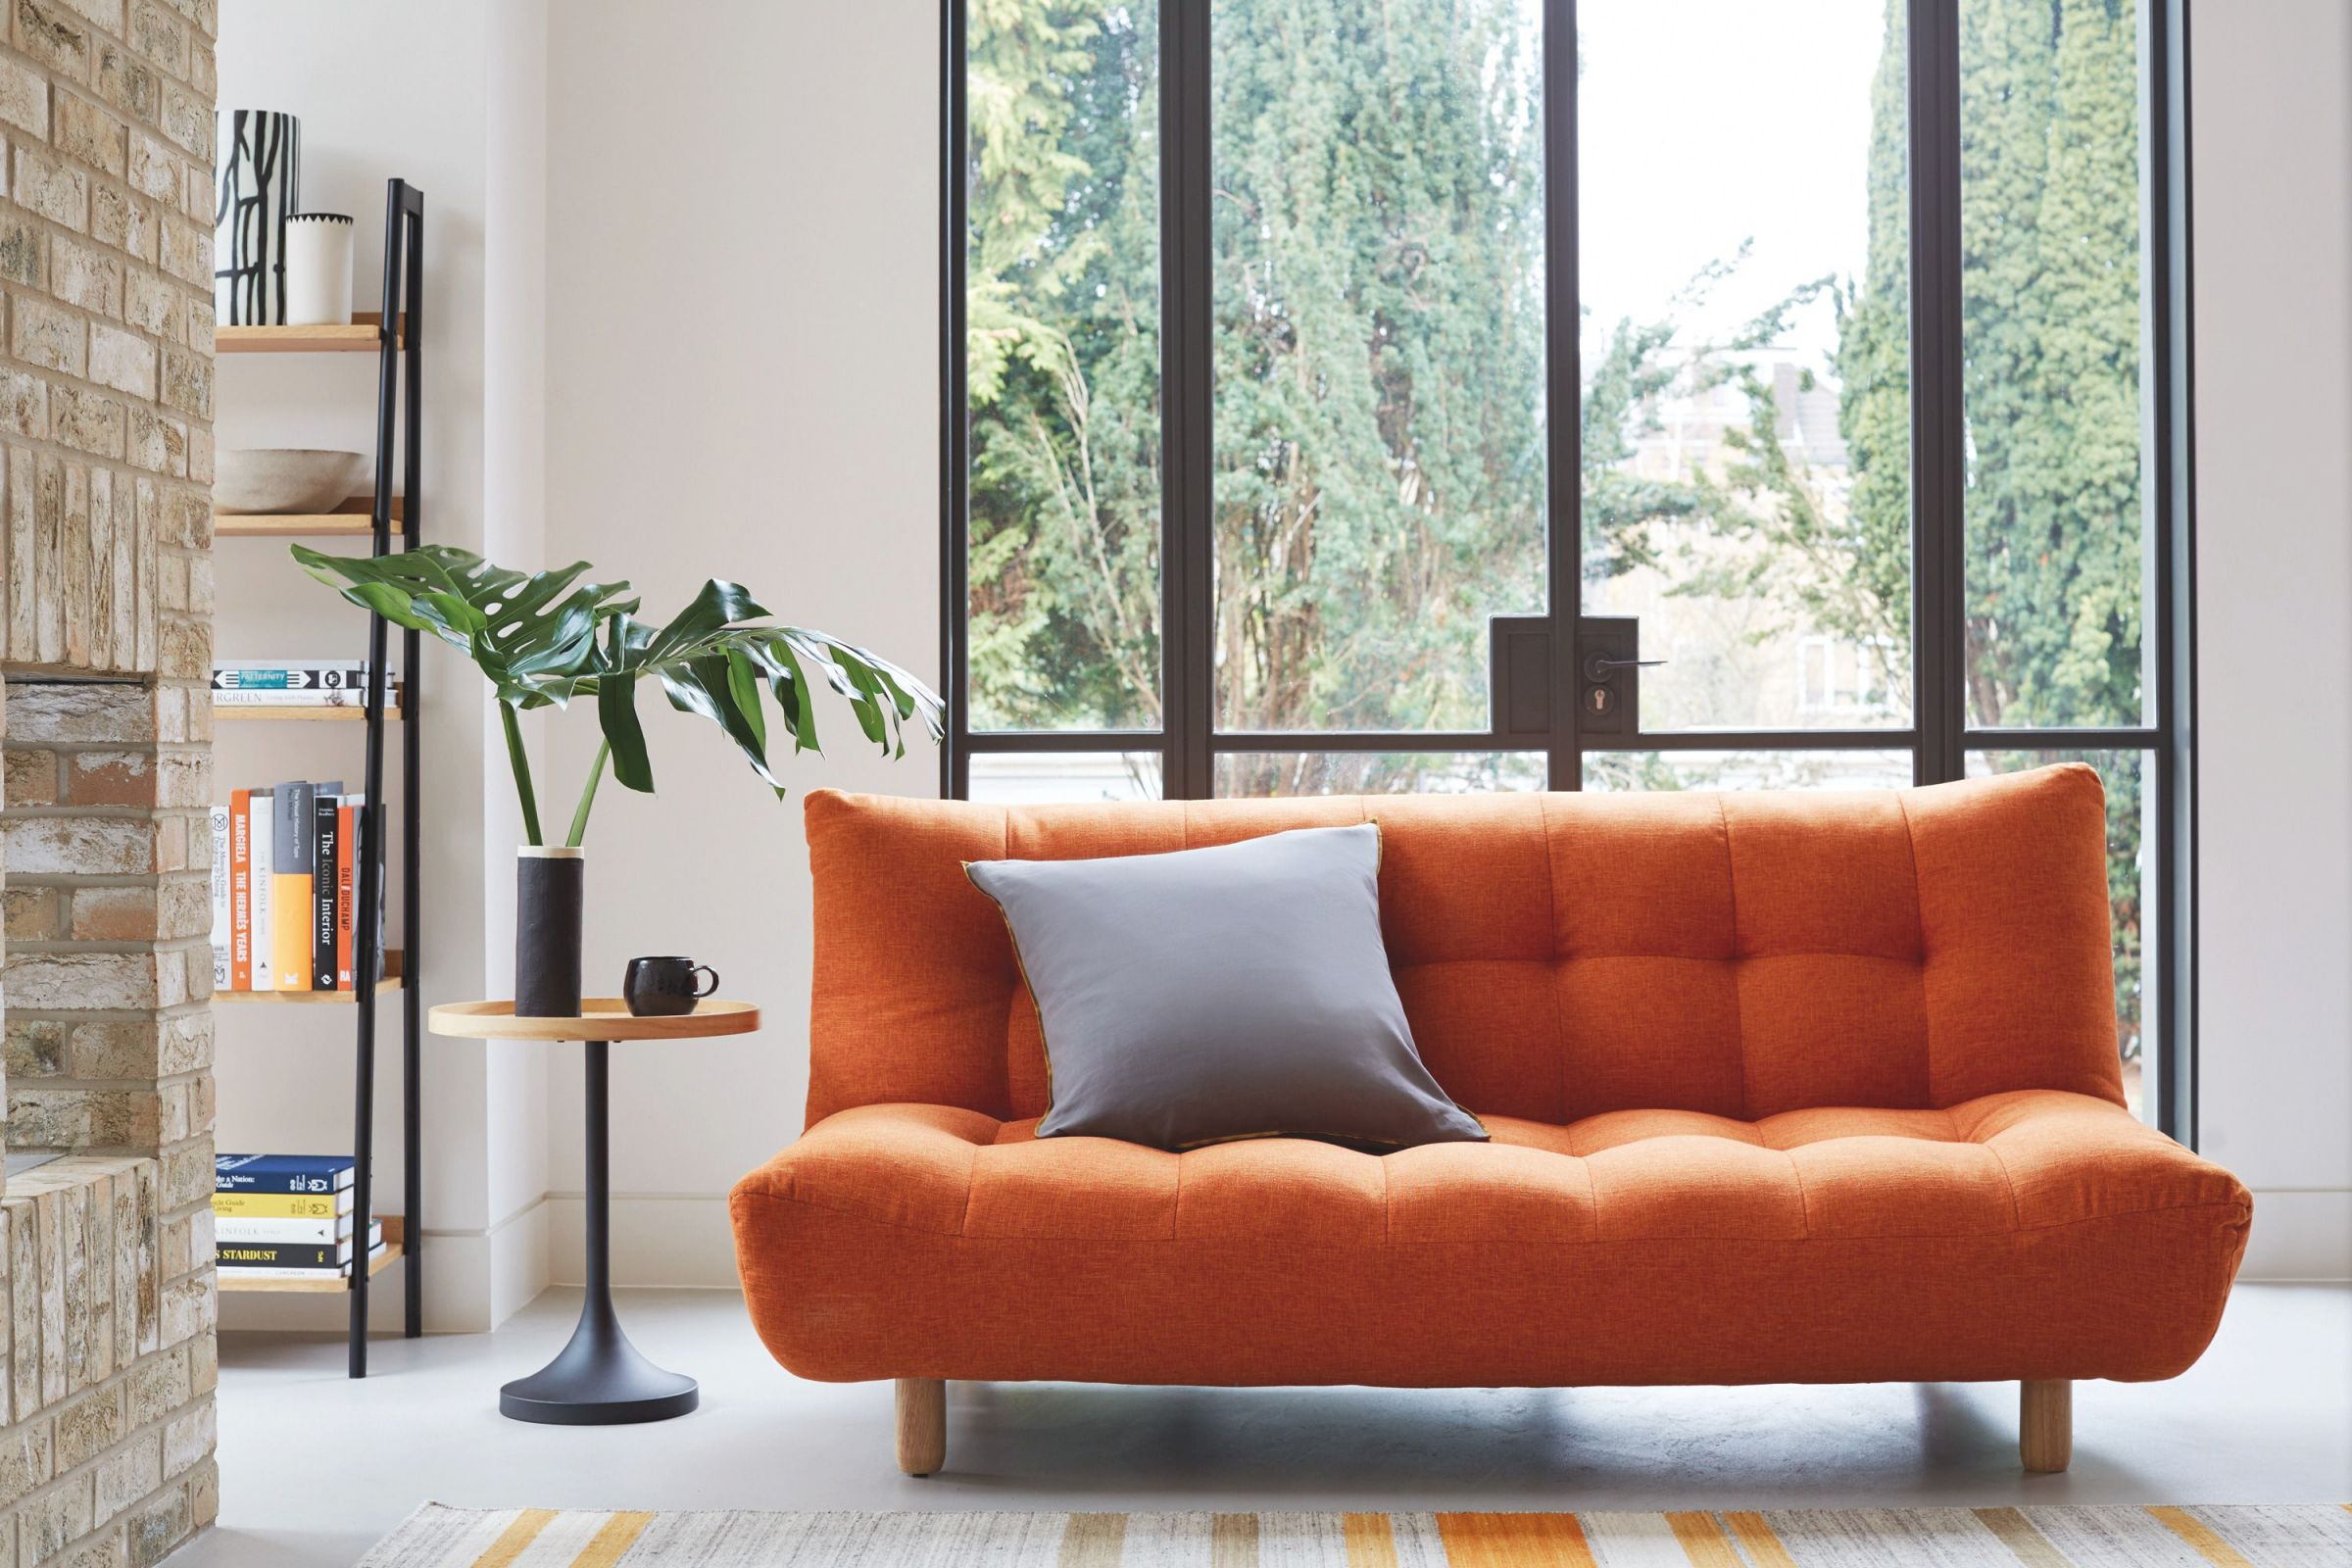 Small Spaces Decorating Tips for Furniture For Small Spaces Living Room